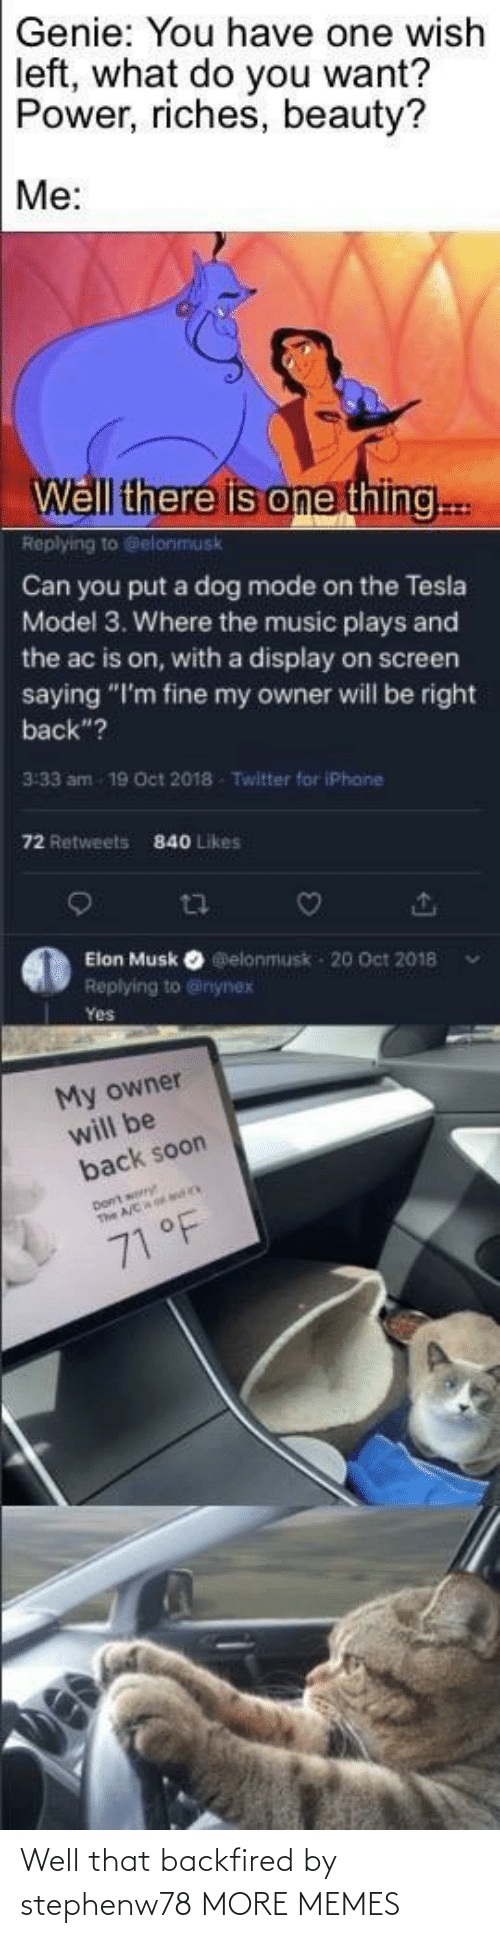 "Well That: Genie: You have one wish  left, what do you want?  Power, riches, beauty?  Me:  Well there is one thing..  Replying to Gelonmusk  Can you put a dog mode on the Tesla  Model 3. Where the music plays and  the ac is on, with a display on screen  saying ""I'm fine my owner will be right  back""?  3:33 am  19 Oct 2018  Twitter for iPhane  72 Retweets  840 Likes  Elon Musk O elonmusk - 20 Oct 2018  Replying to @inynex  Yes  My owner  will be  back soon  71 °F Well that backfired by stephenw78 MORE MEMES"